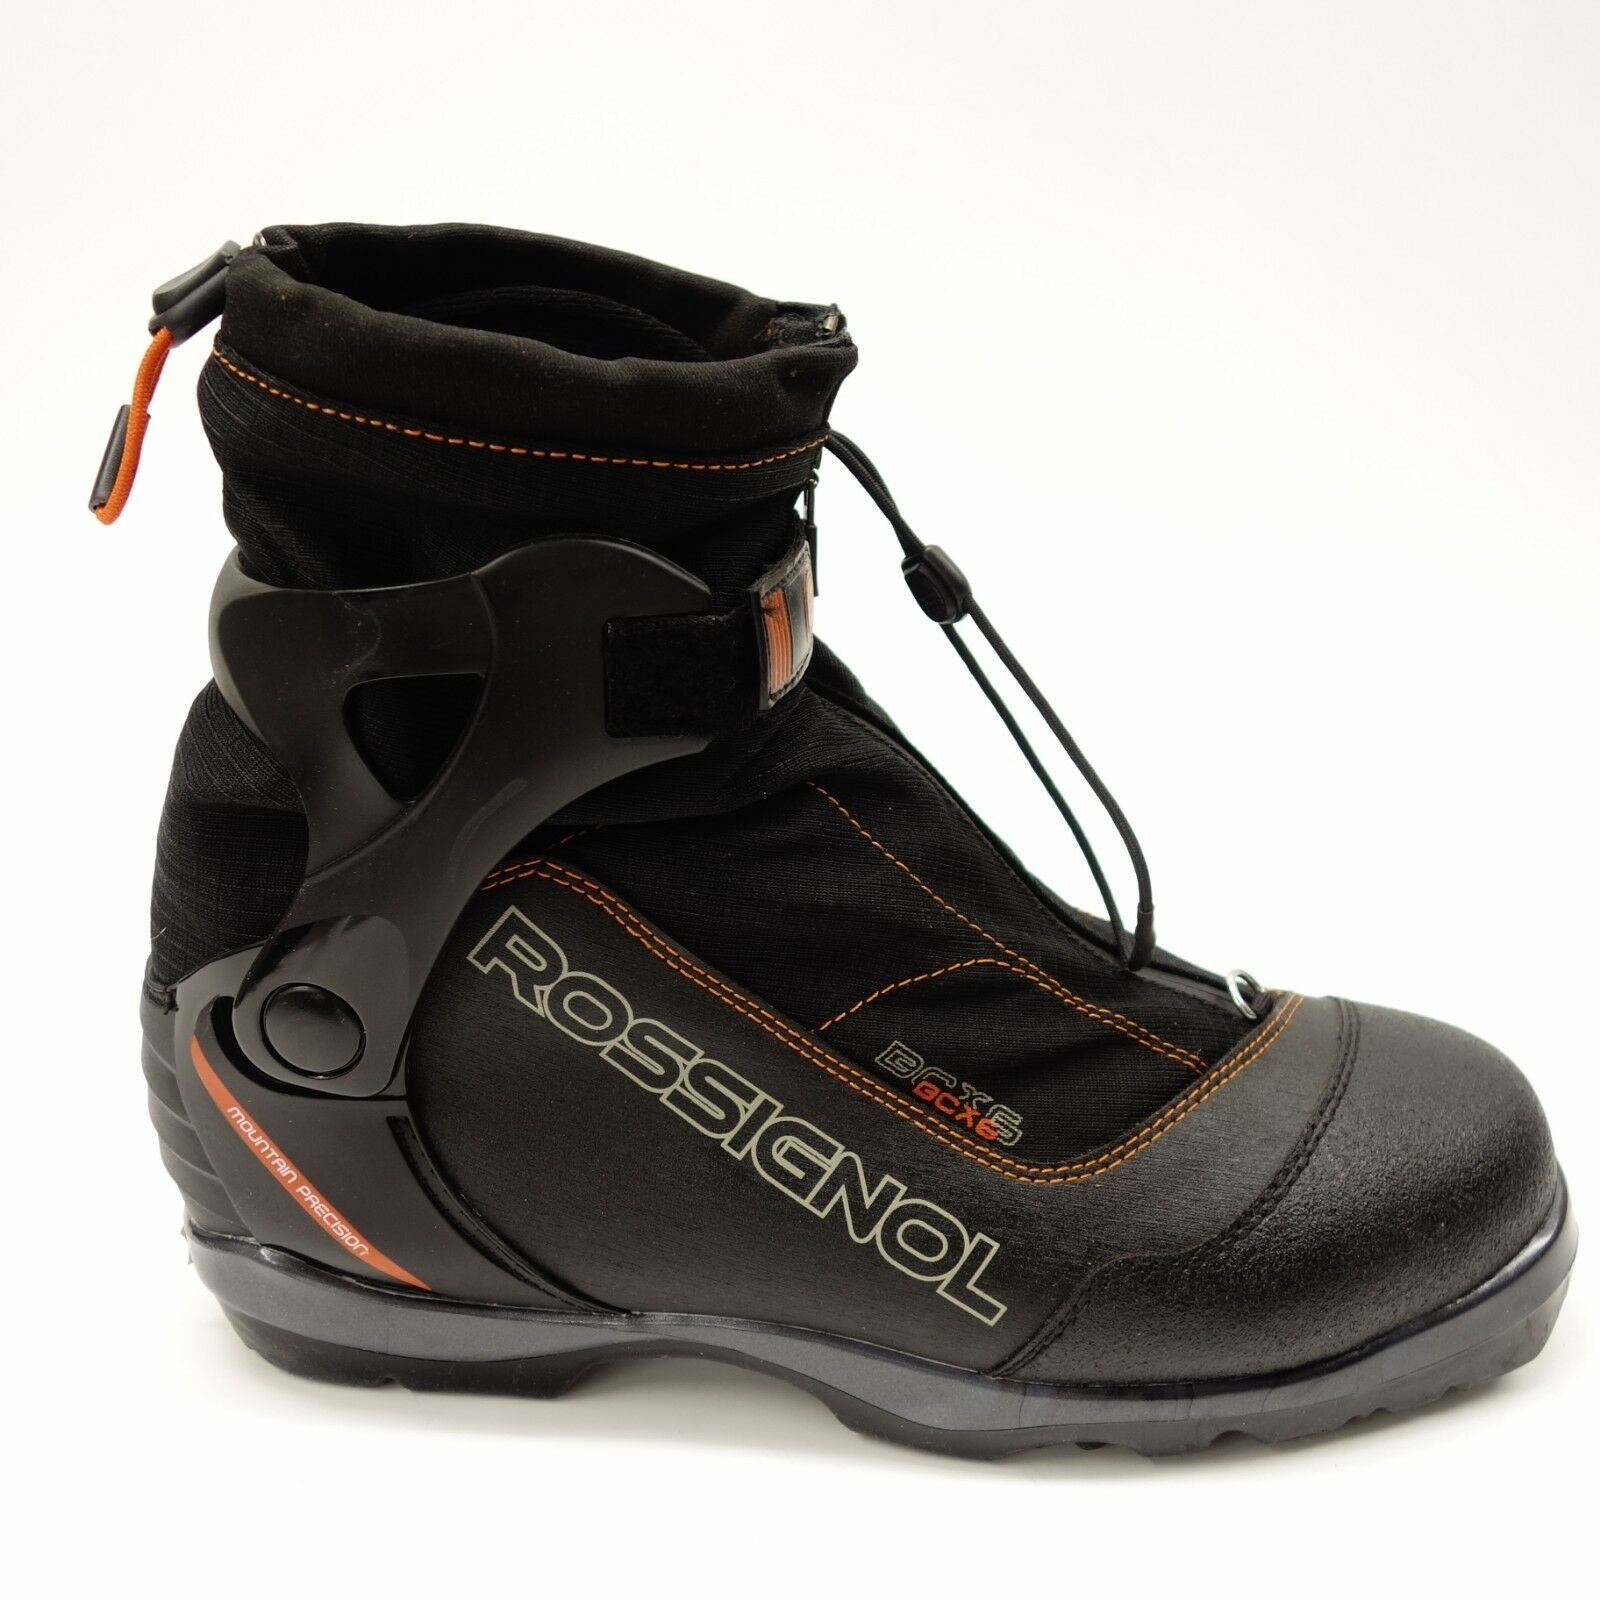 Whitewoods New Junior 301 3PIN 75mm Cross Country Insulated SKi Boots